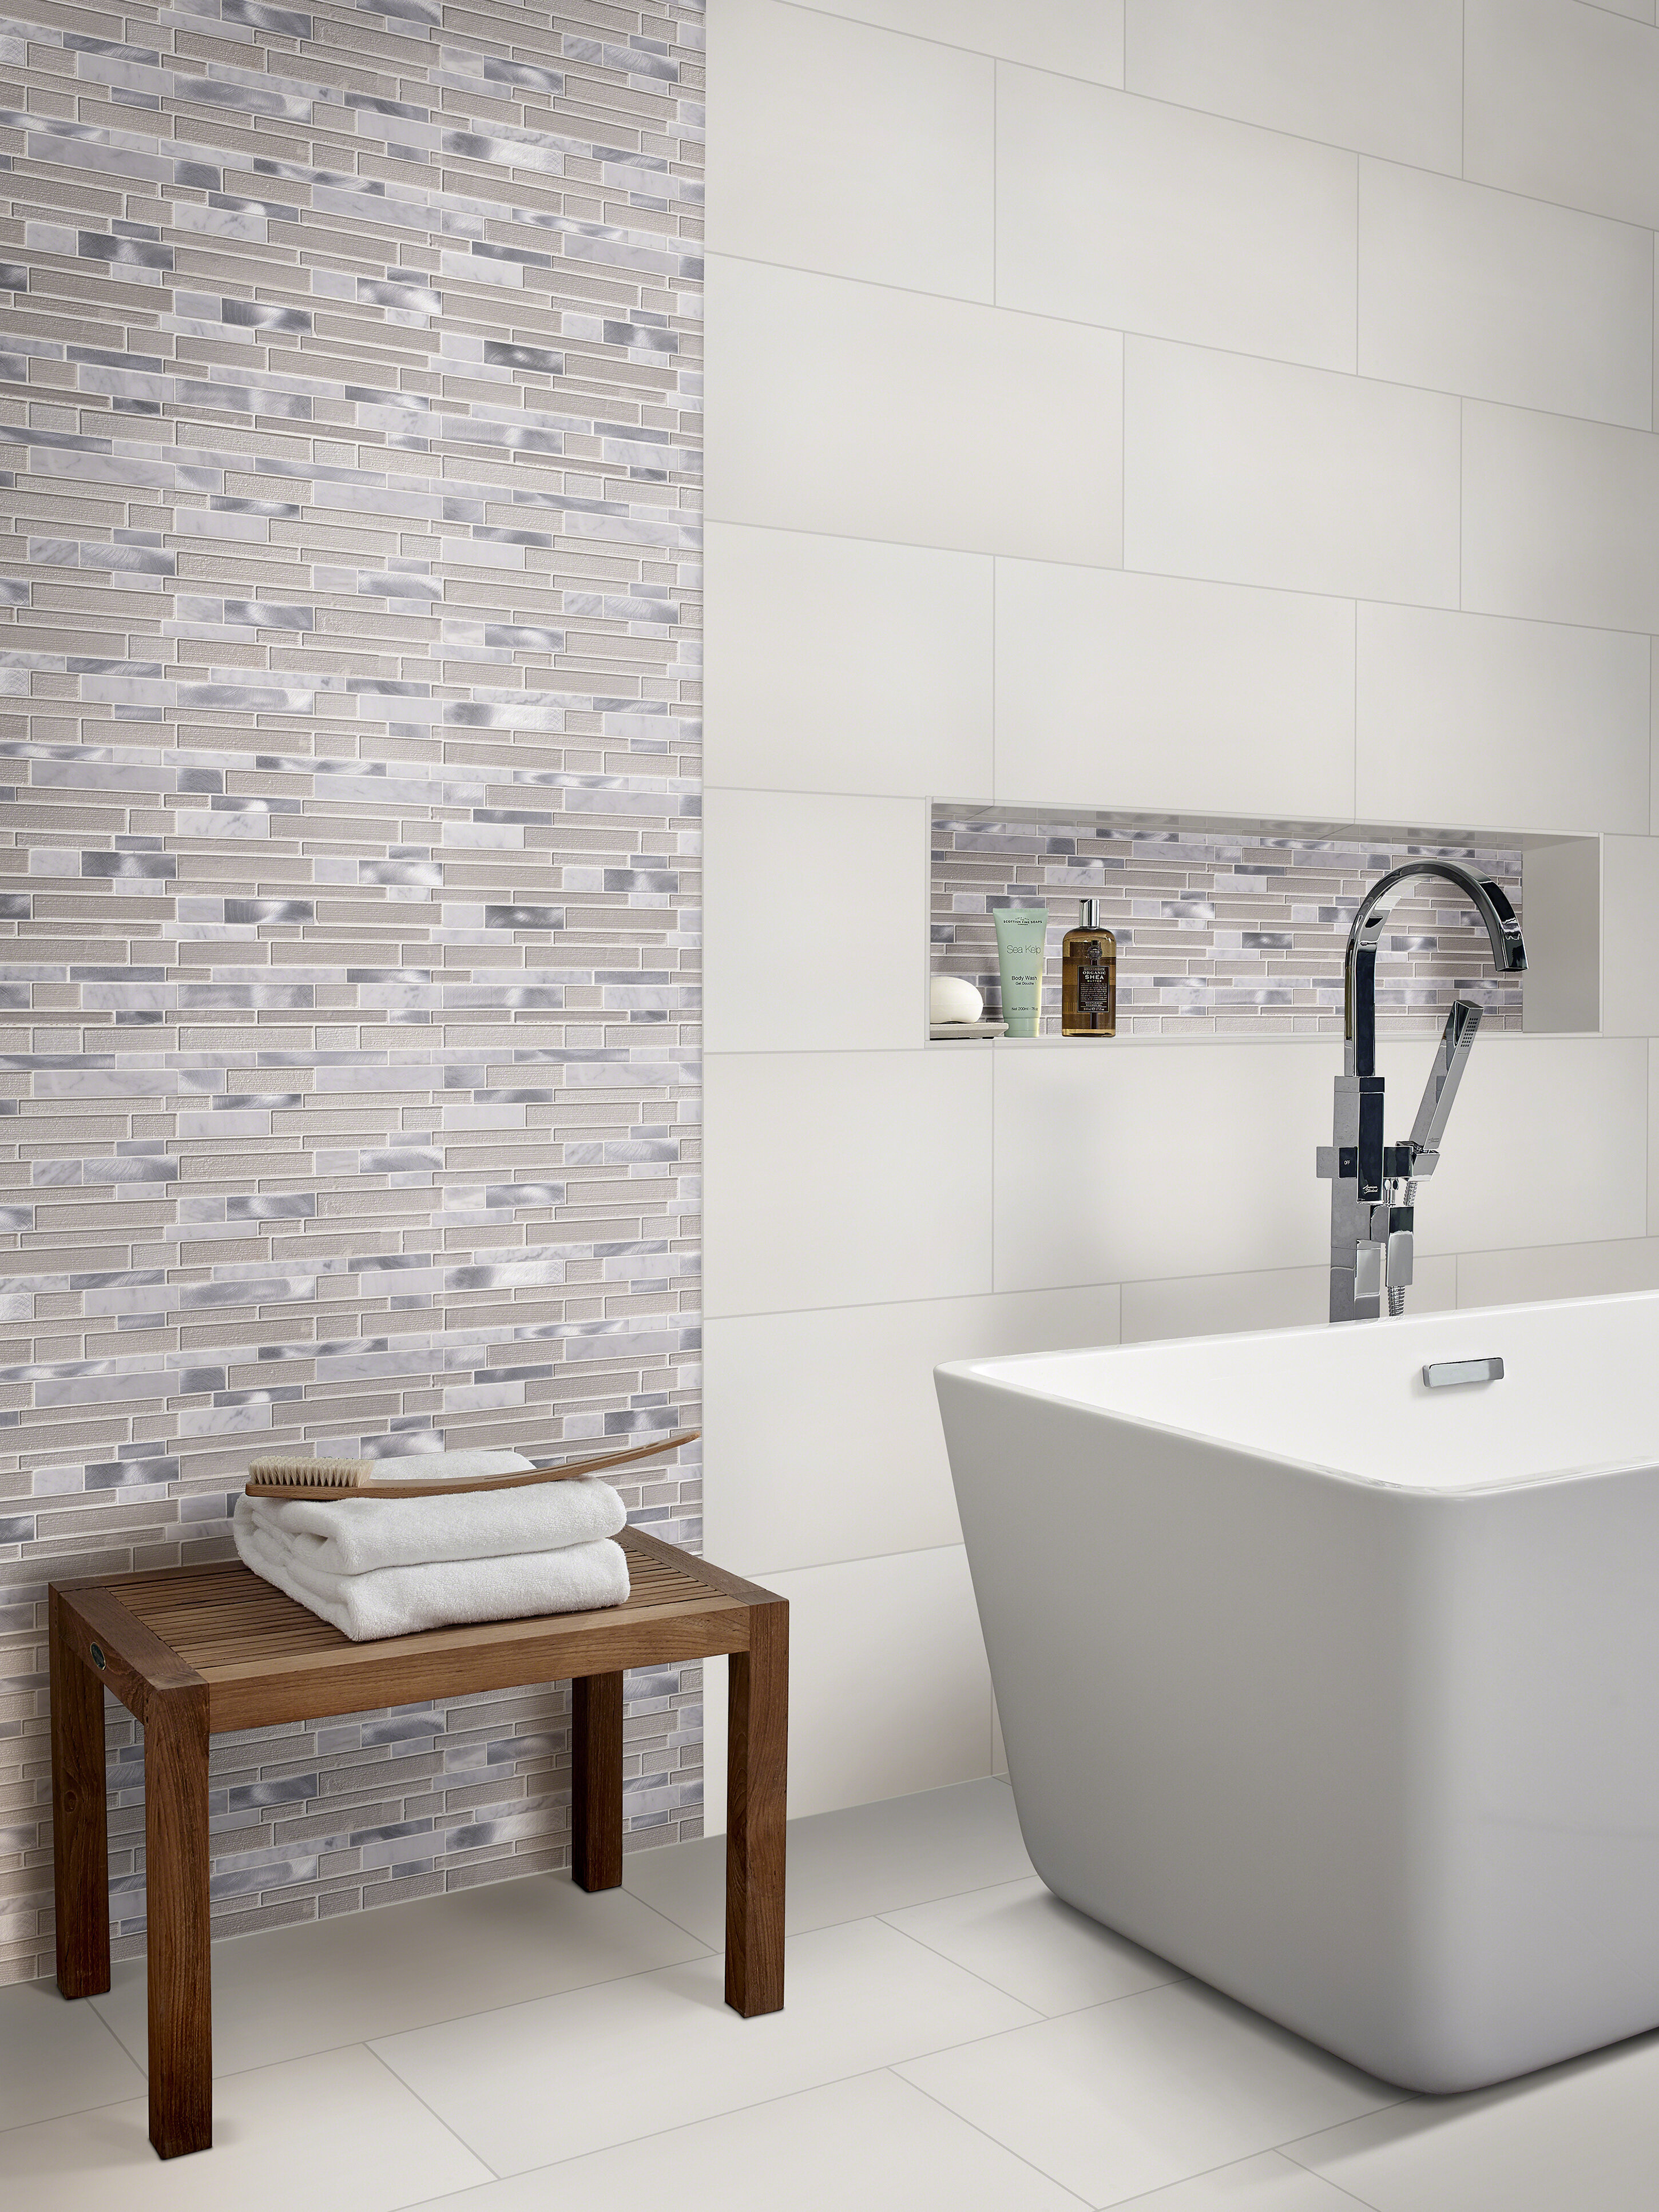 Domino 12 x 24 Porcelain Field Tile in Matte White & Reviews | AllModern